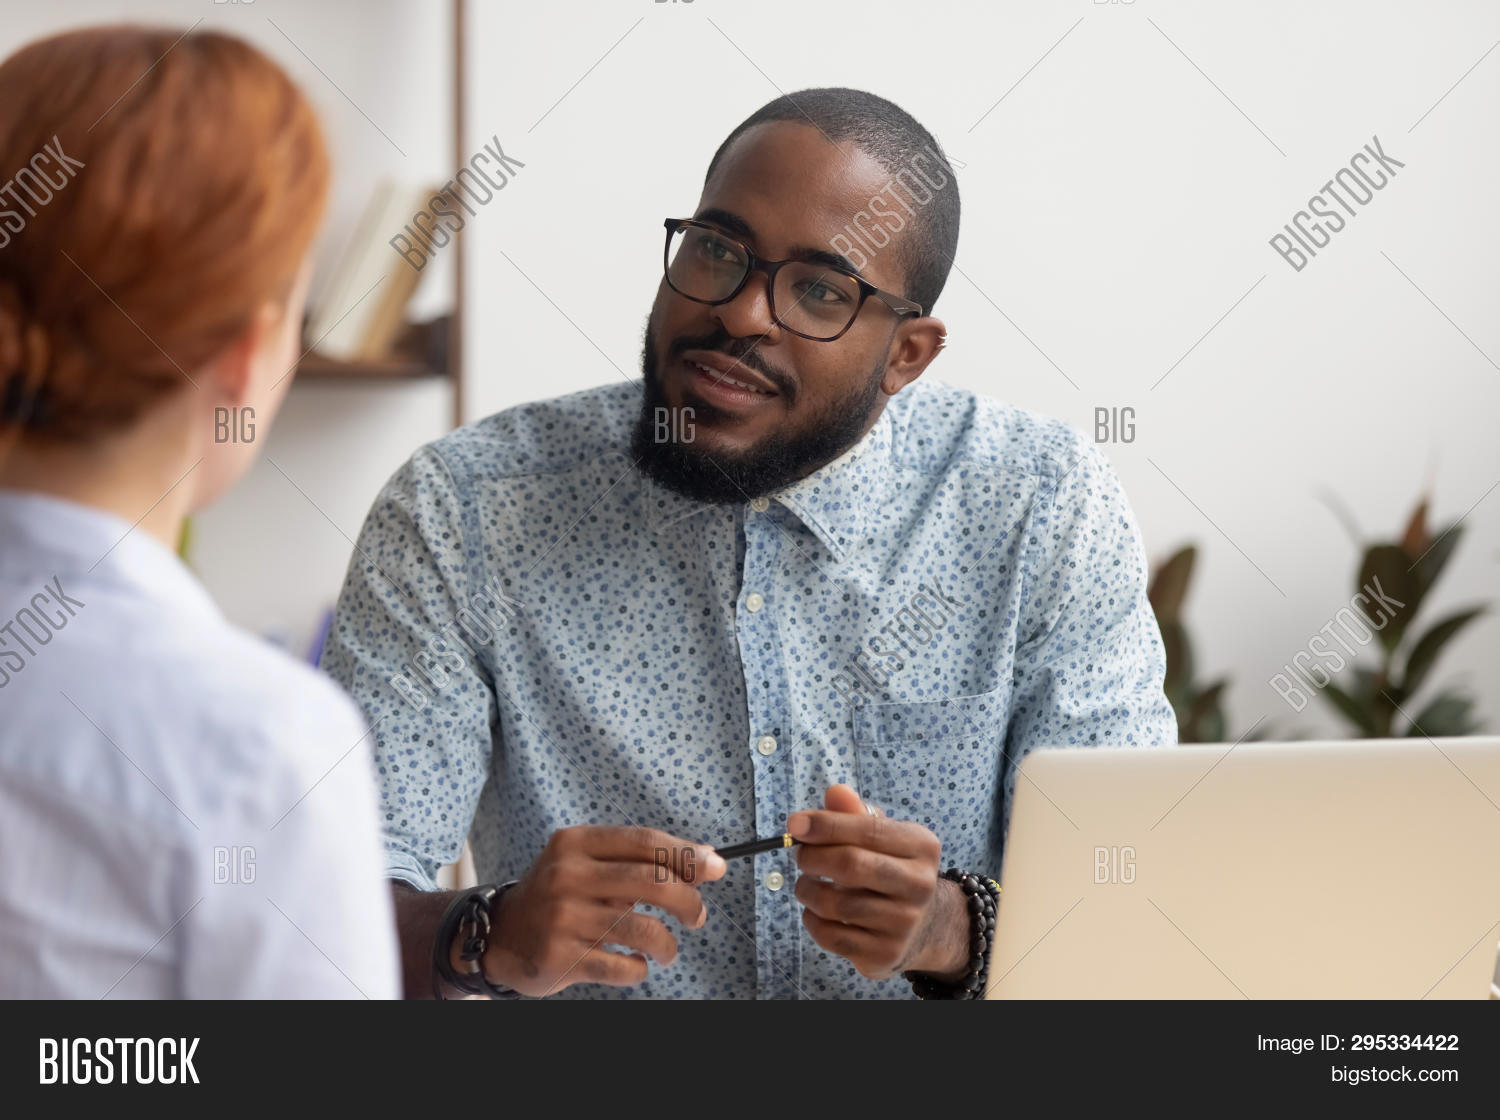 African Hr Manager Listening To Caucasian Applicant At Job Interview